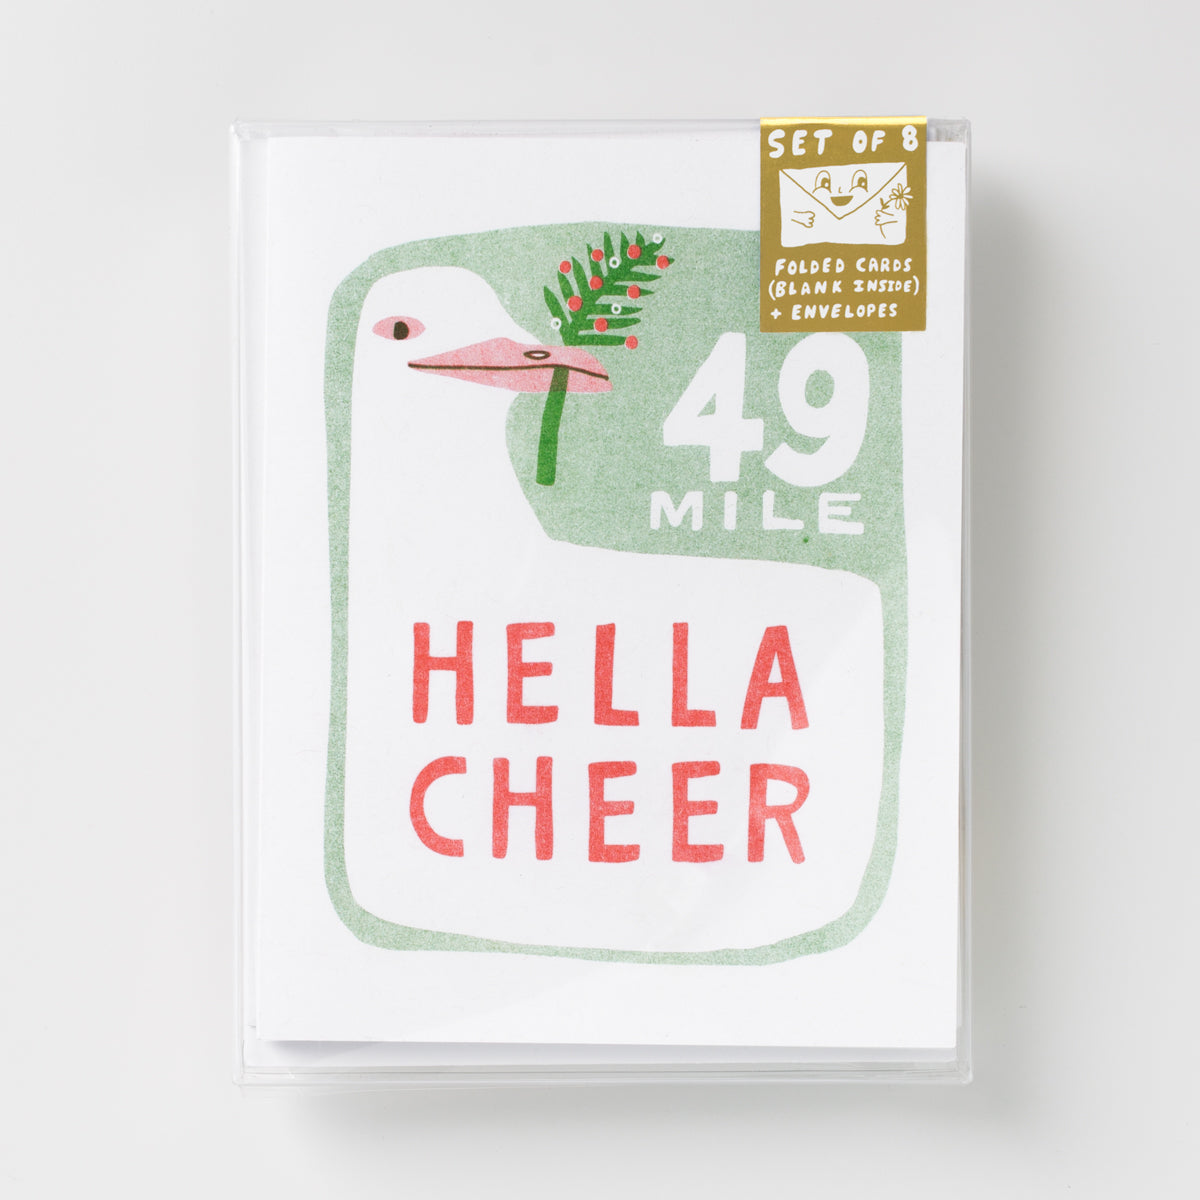 Hella Cheer risograph holiday greeting card set, 49 mile San Francisco